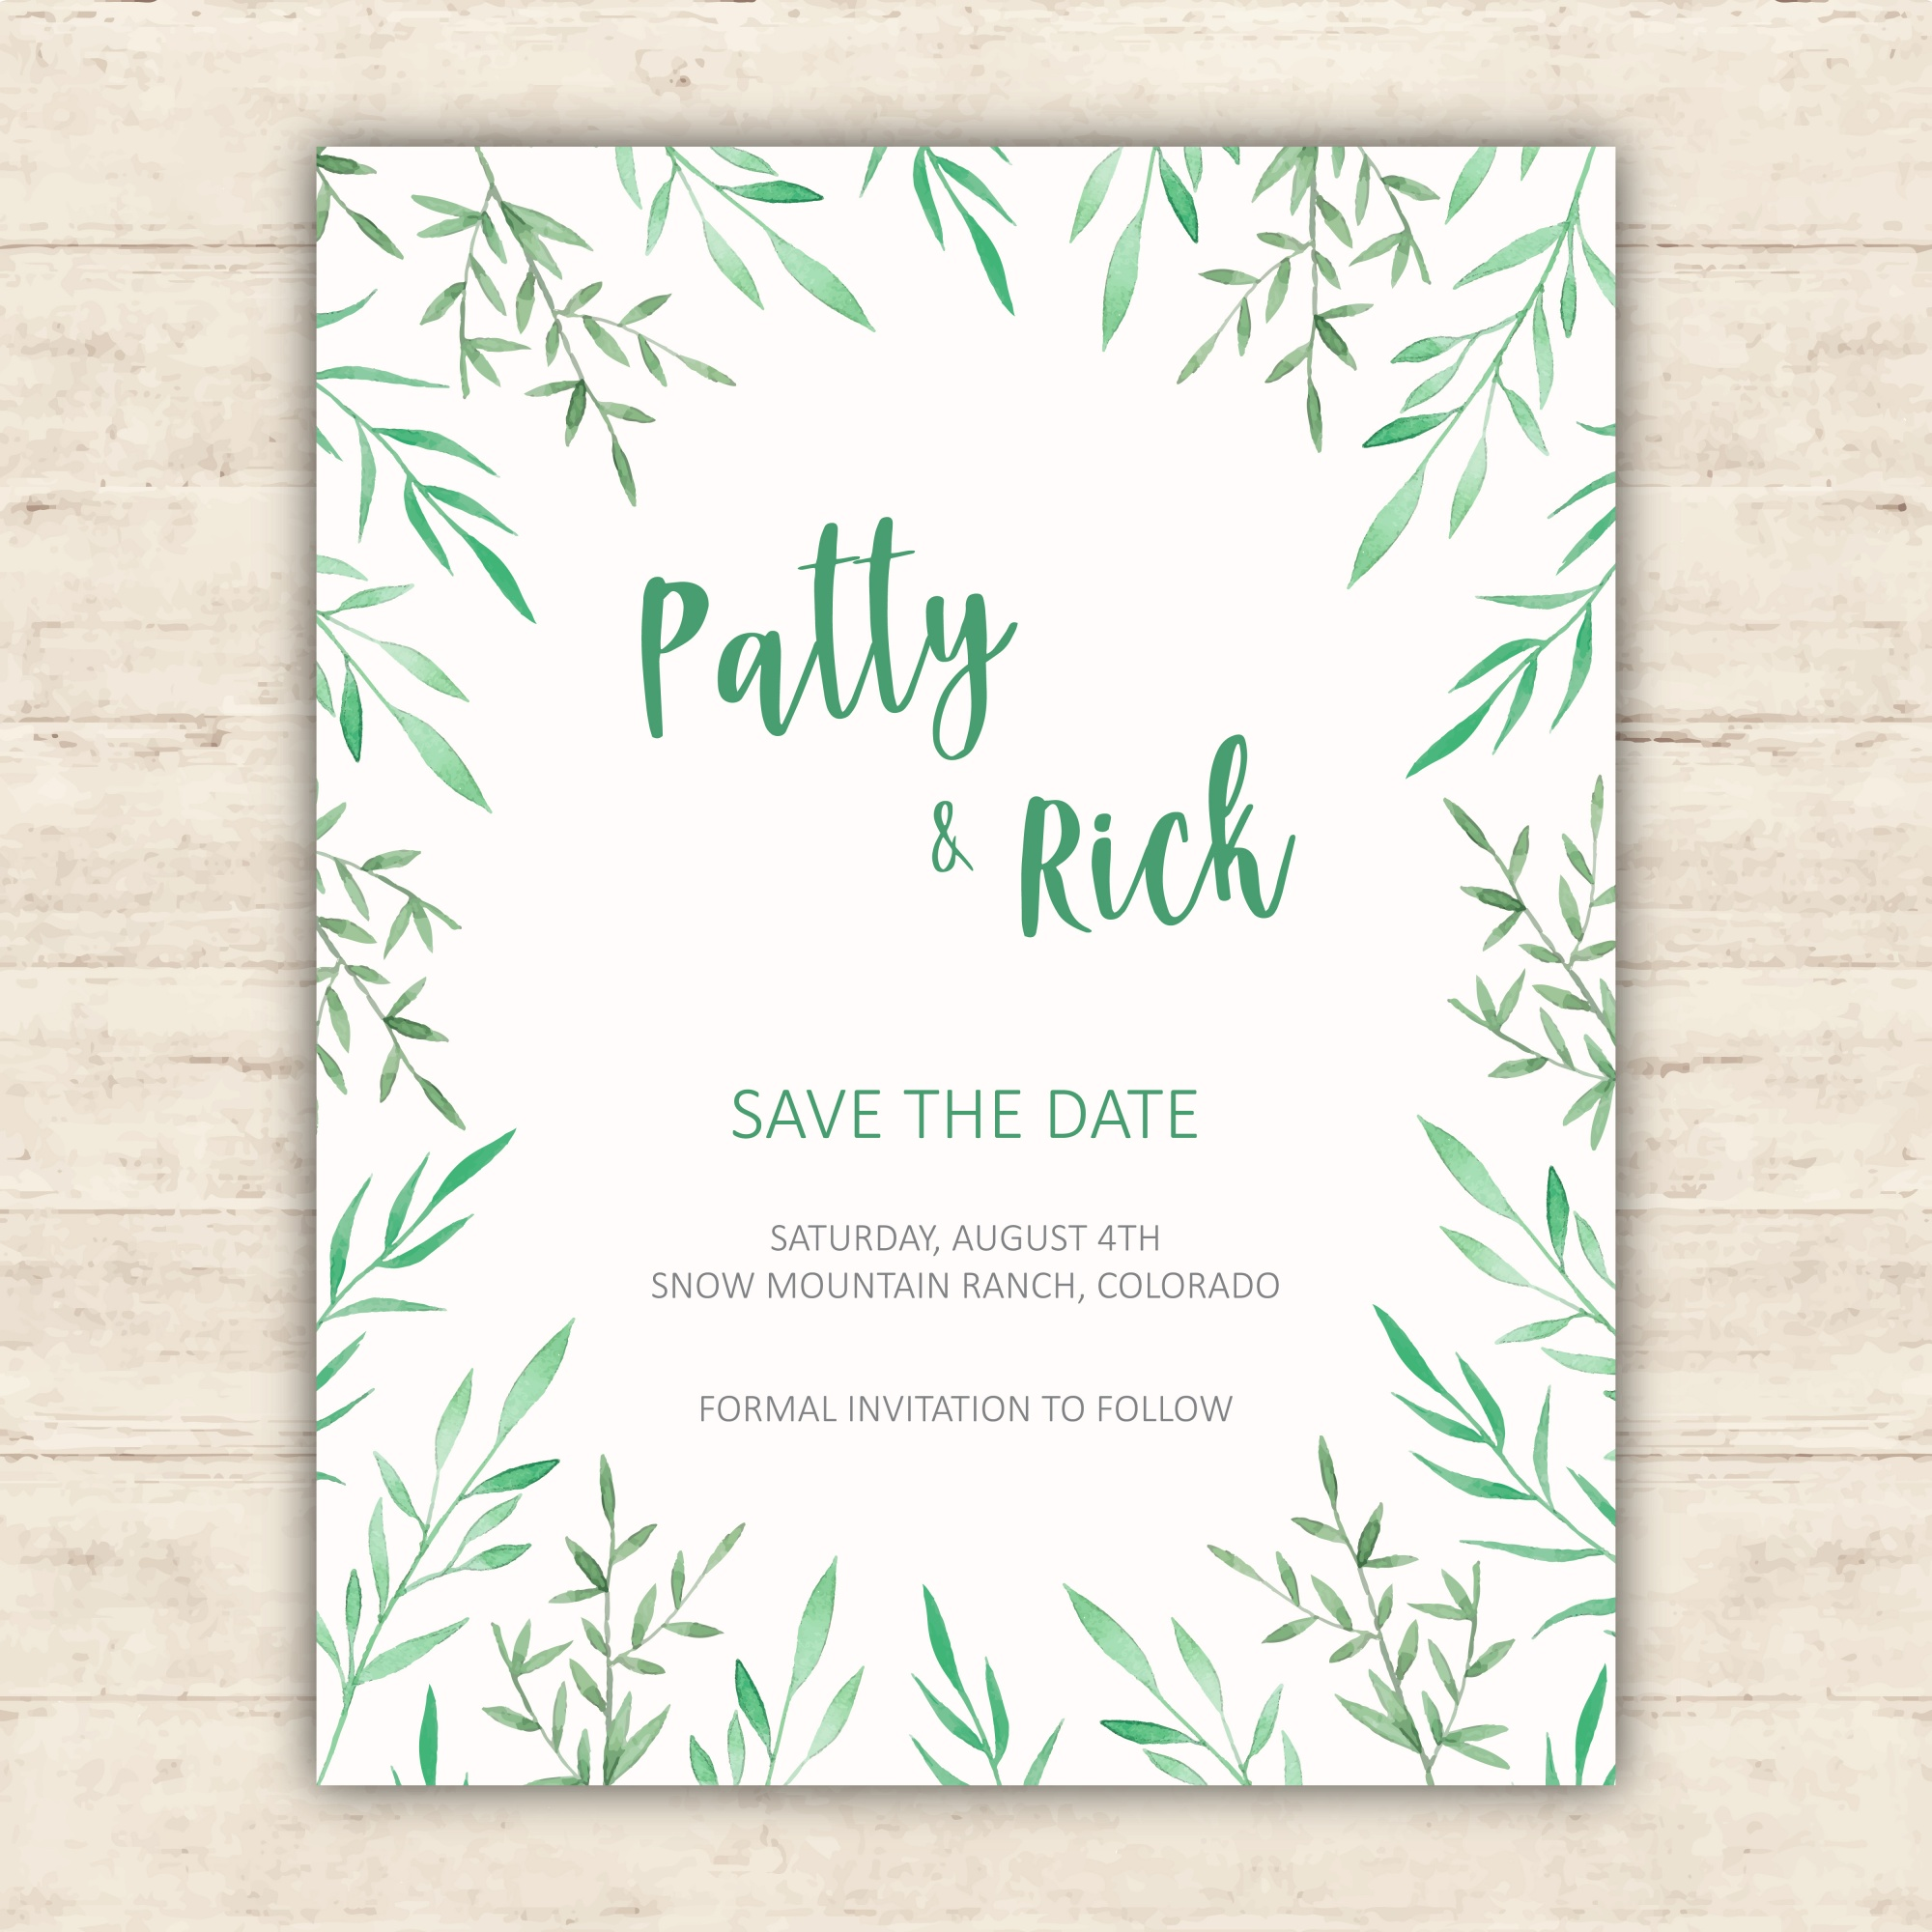 Minimalist botanical save the date card